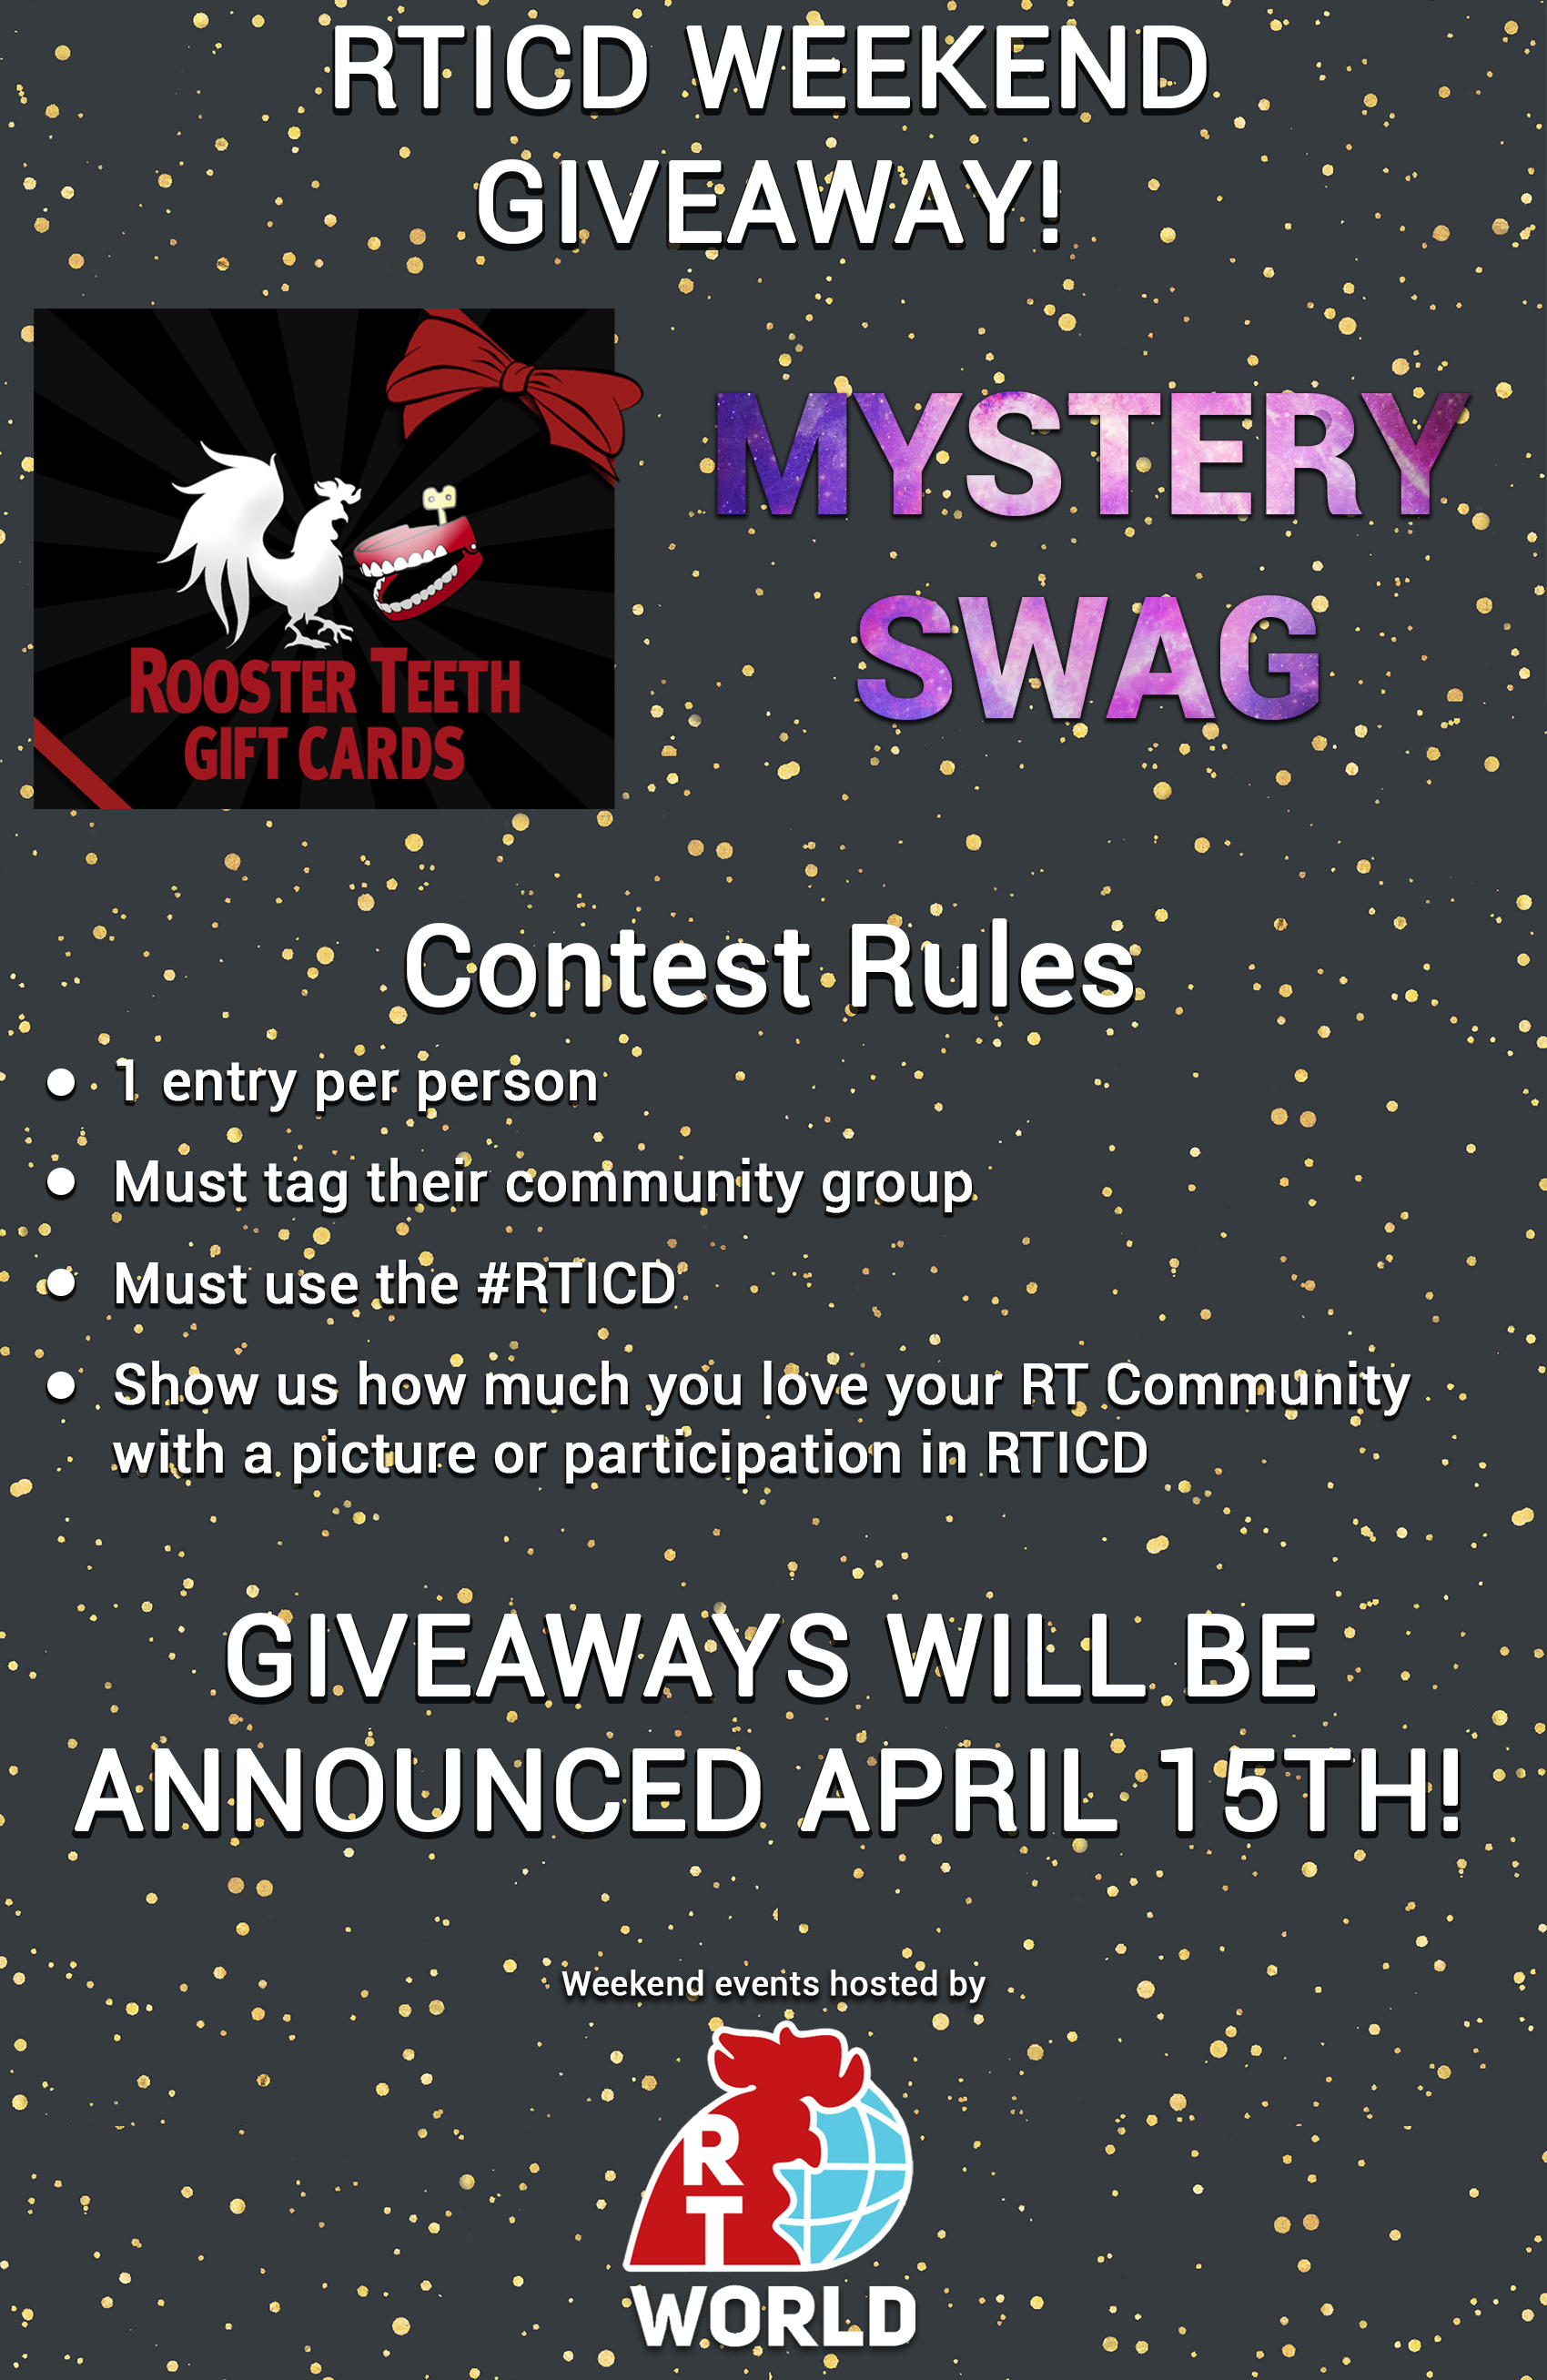 856814-1490925092071-RTICD_2017_Giveaway